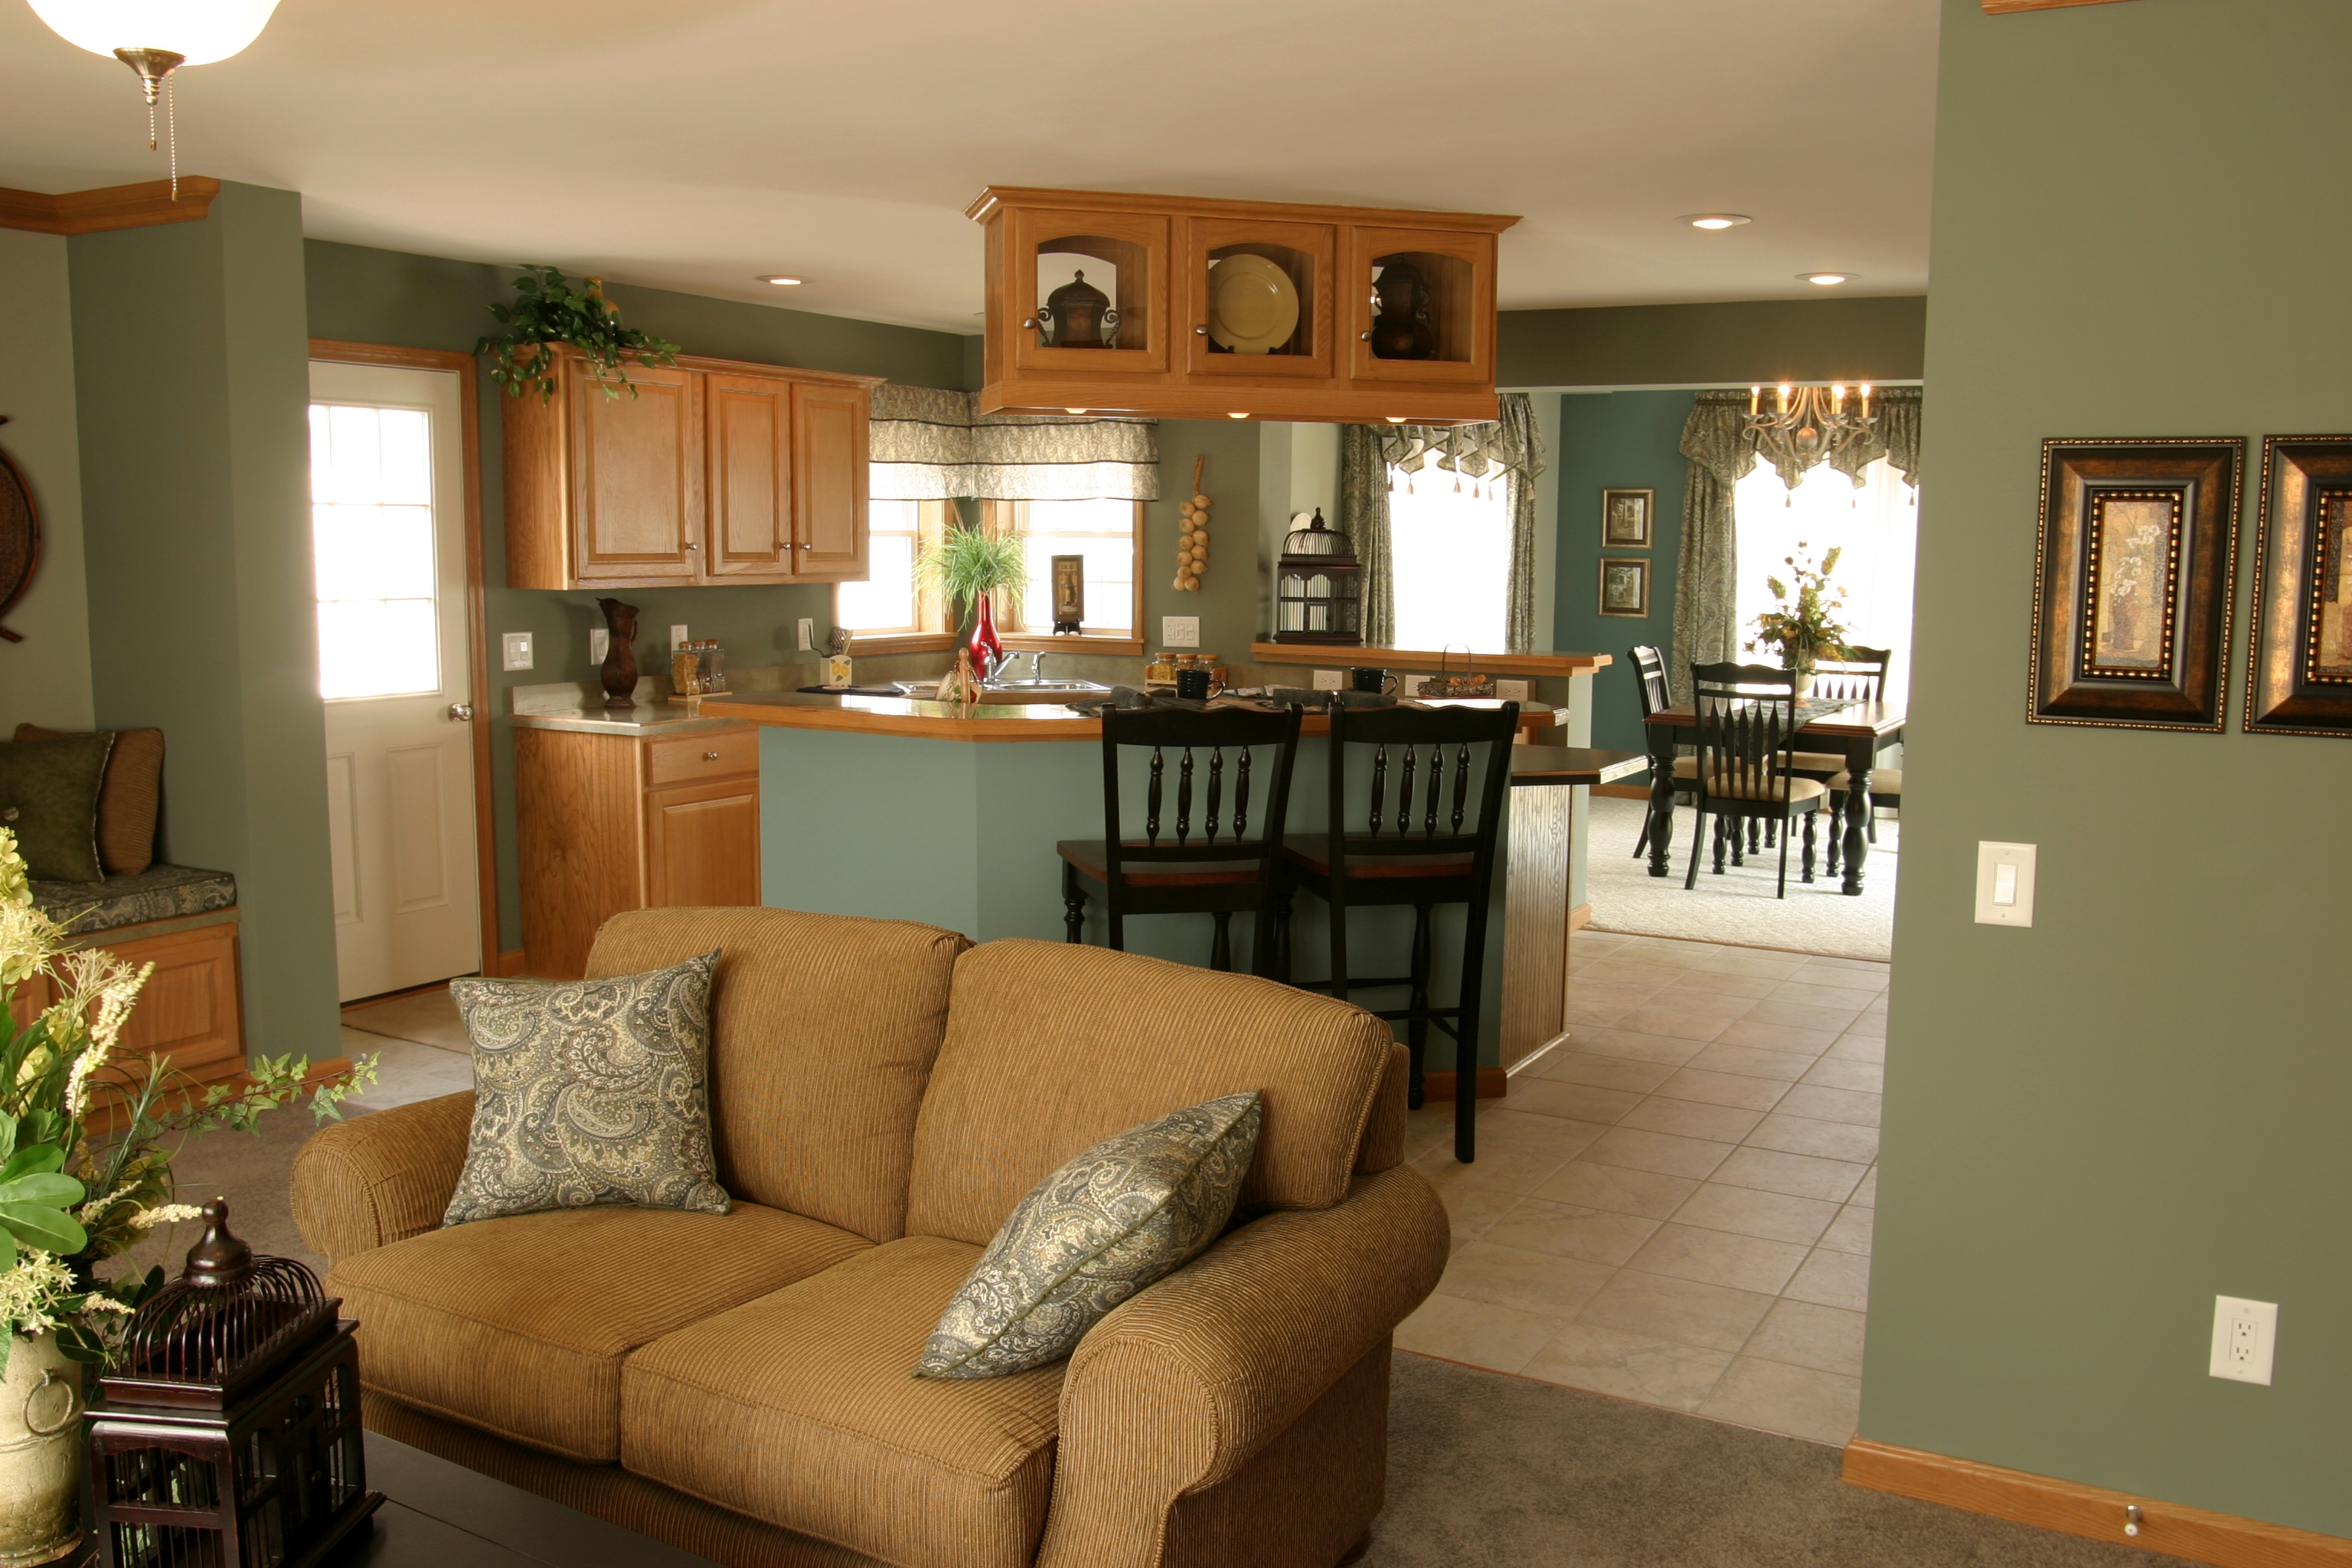 ARNETT 3 Living Area Interior Manufactured Modular Homes In Long Island